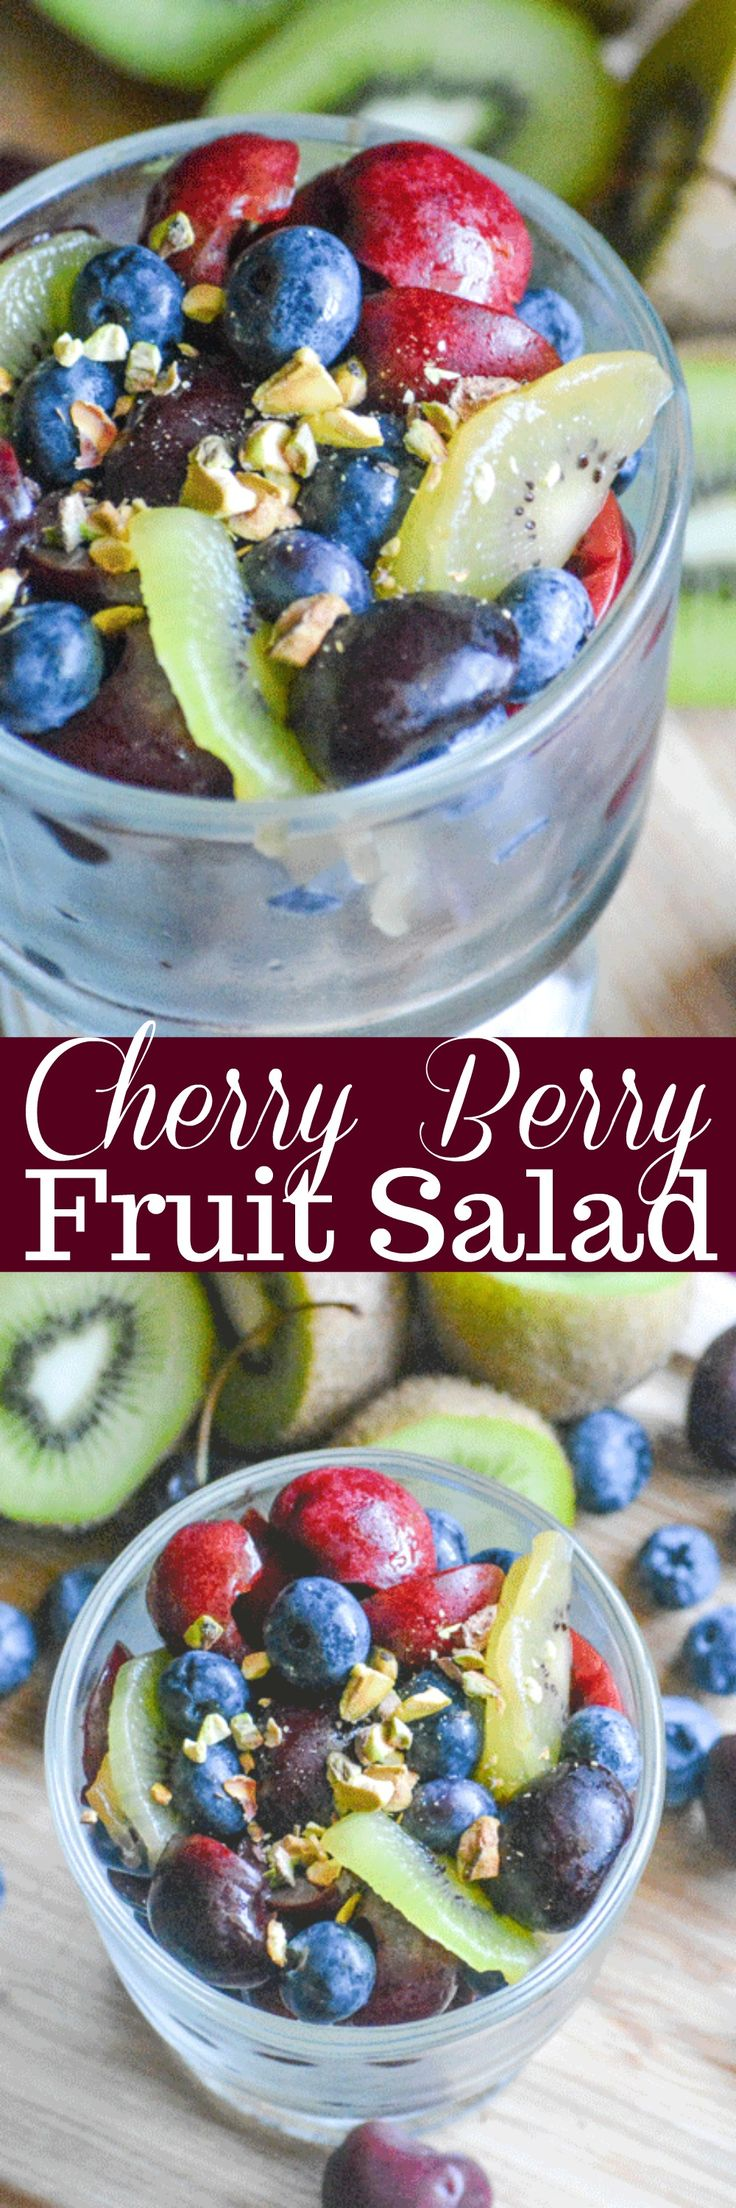 Loaded with antioxidants (because let's face it, back to school means back to germs) this healthy side dish doubles as a fresh, sweet take on dessert. Bursting with sweet cherries and blueberries, studded with chunks of kiwi and sprinkled with pistachio pieces- our fresh Cherry Berry Fruit Salad is ready in just 5 minutes! #BaronessPatches #ad